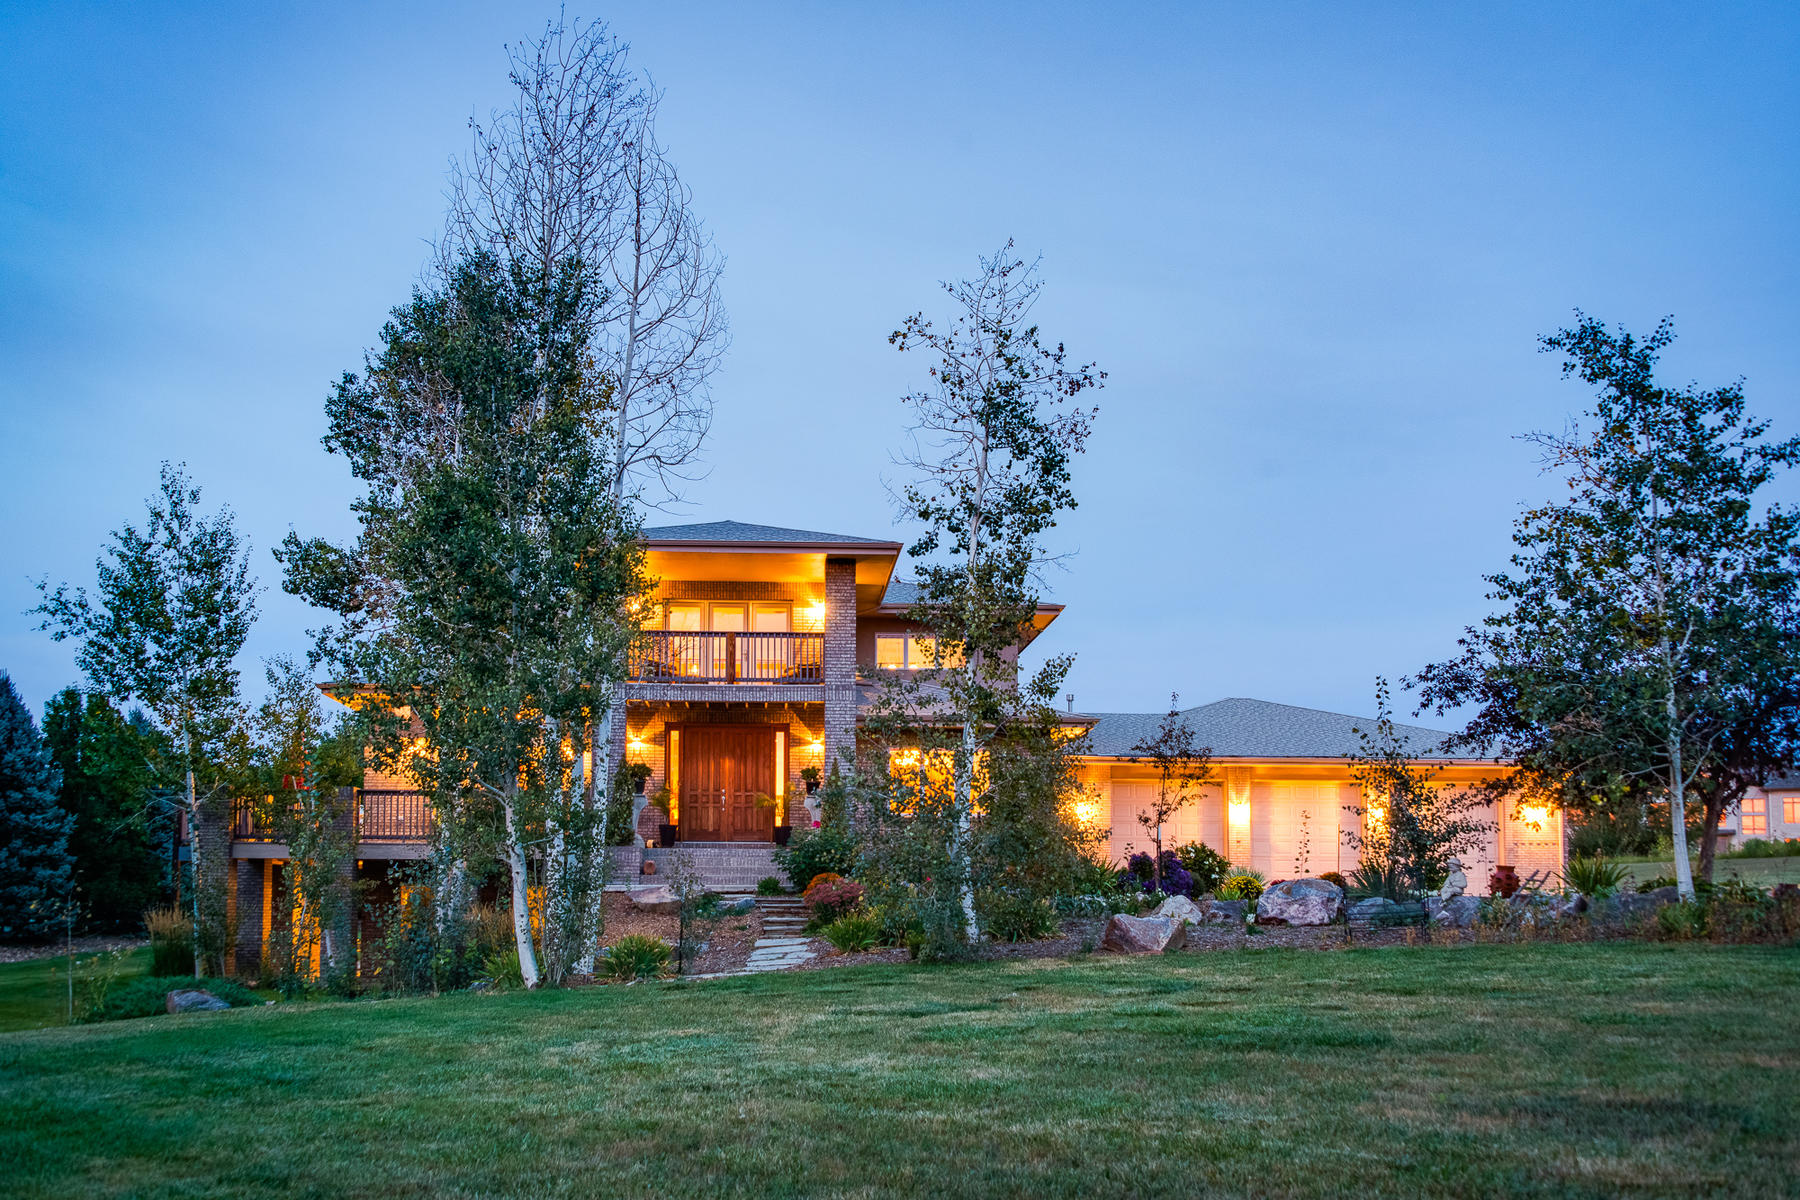 Single Family Homes for Active at Rare Boulder County Baxter Farm Estate with SIX STALL GARAGE 55 Baxter Farm Lane Erie, Colorado 80516 United States